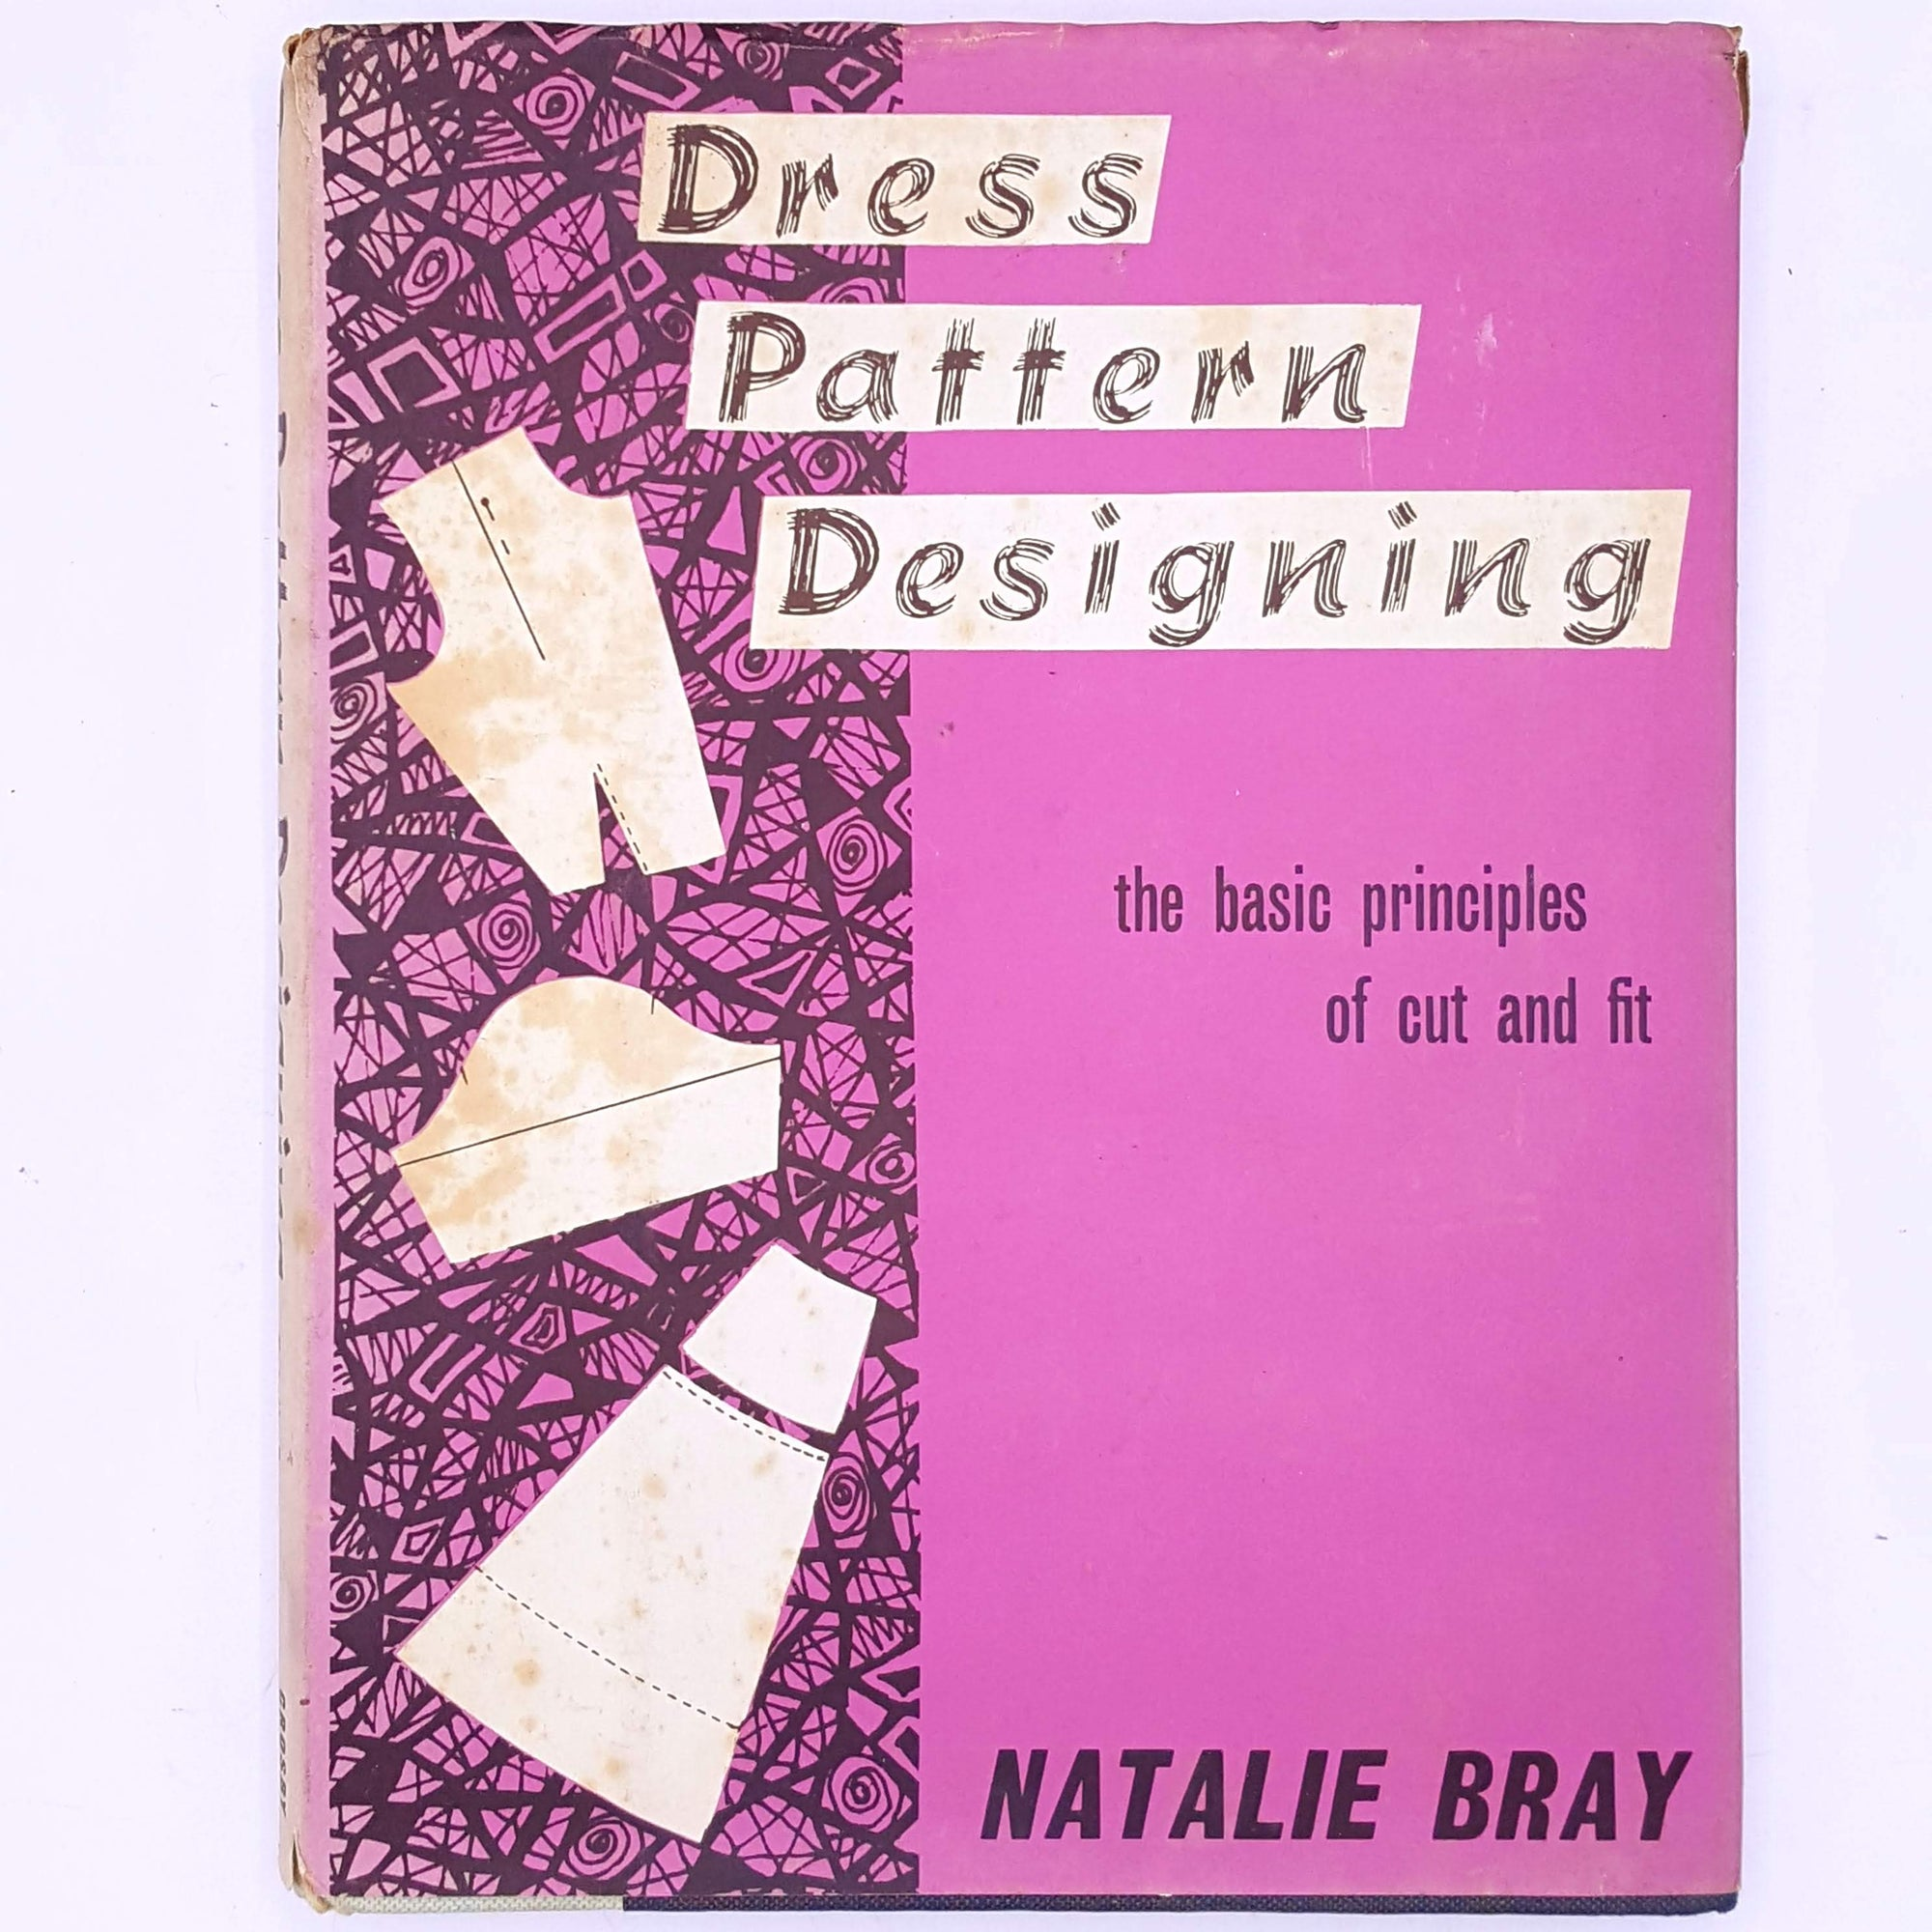 Dress Pattern Design by Natalie Bray